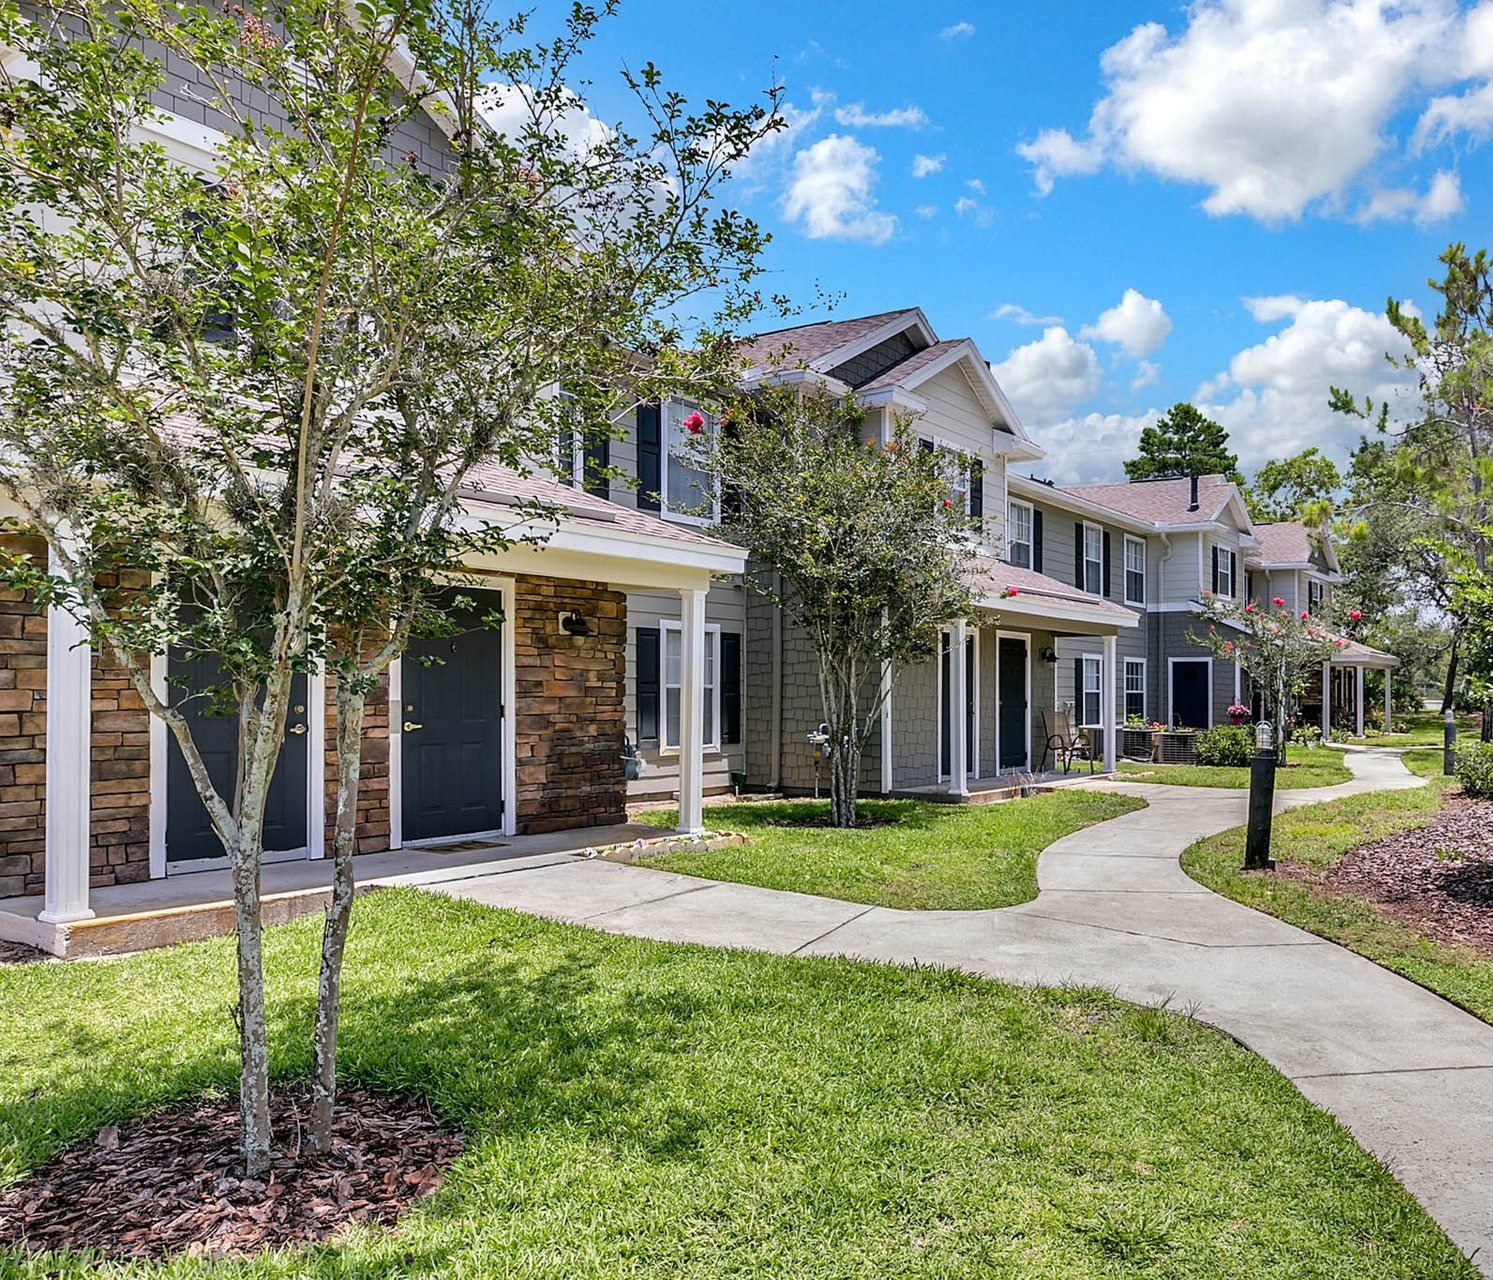 Cape Cod Apartments: Apartments In Spring Hill, FL